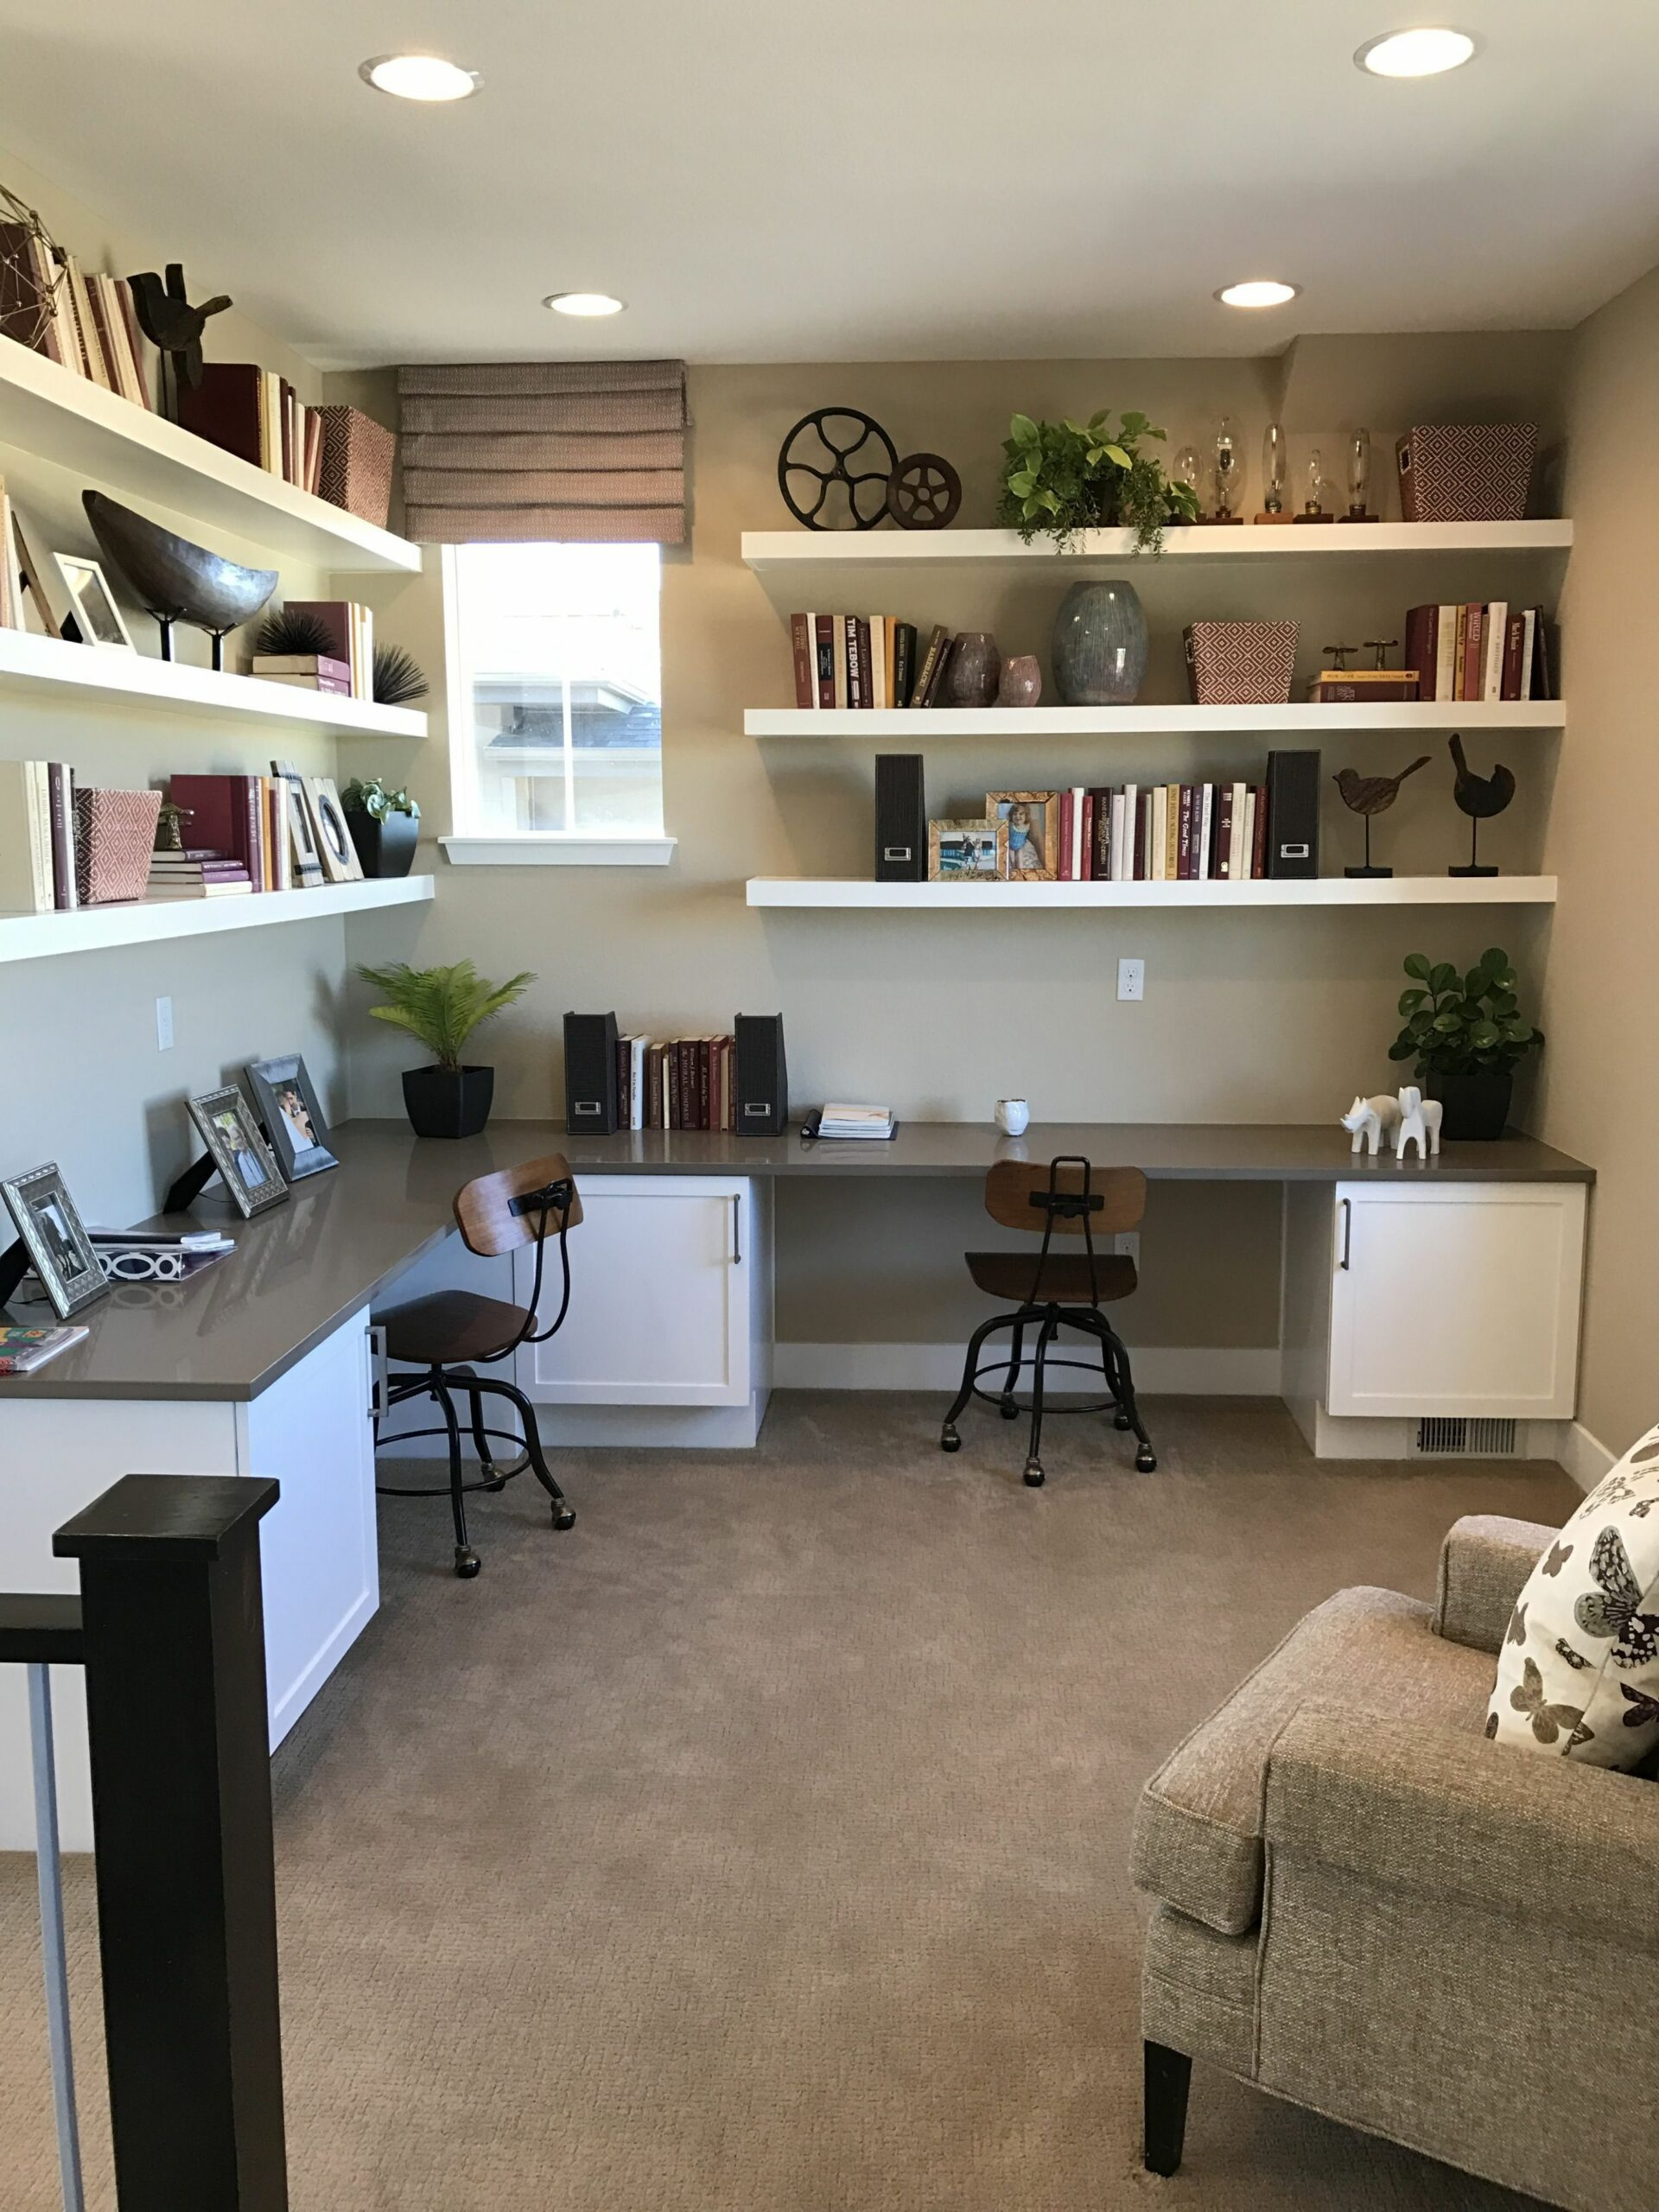 Home Office Idea | Home office furniture, Home office space, Home ...